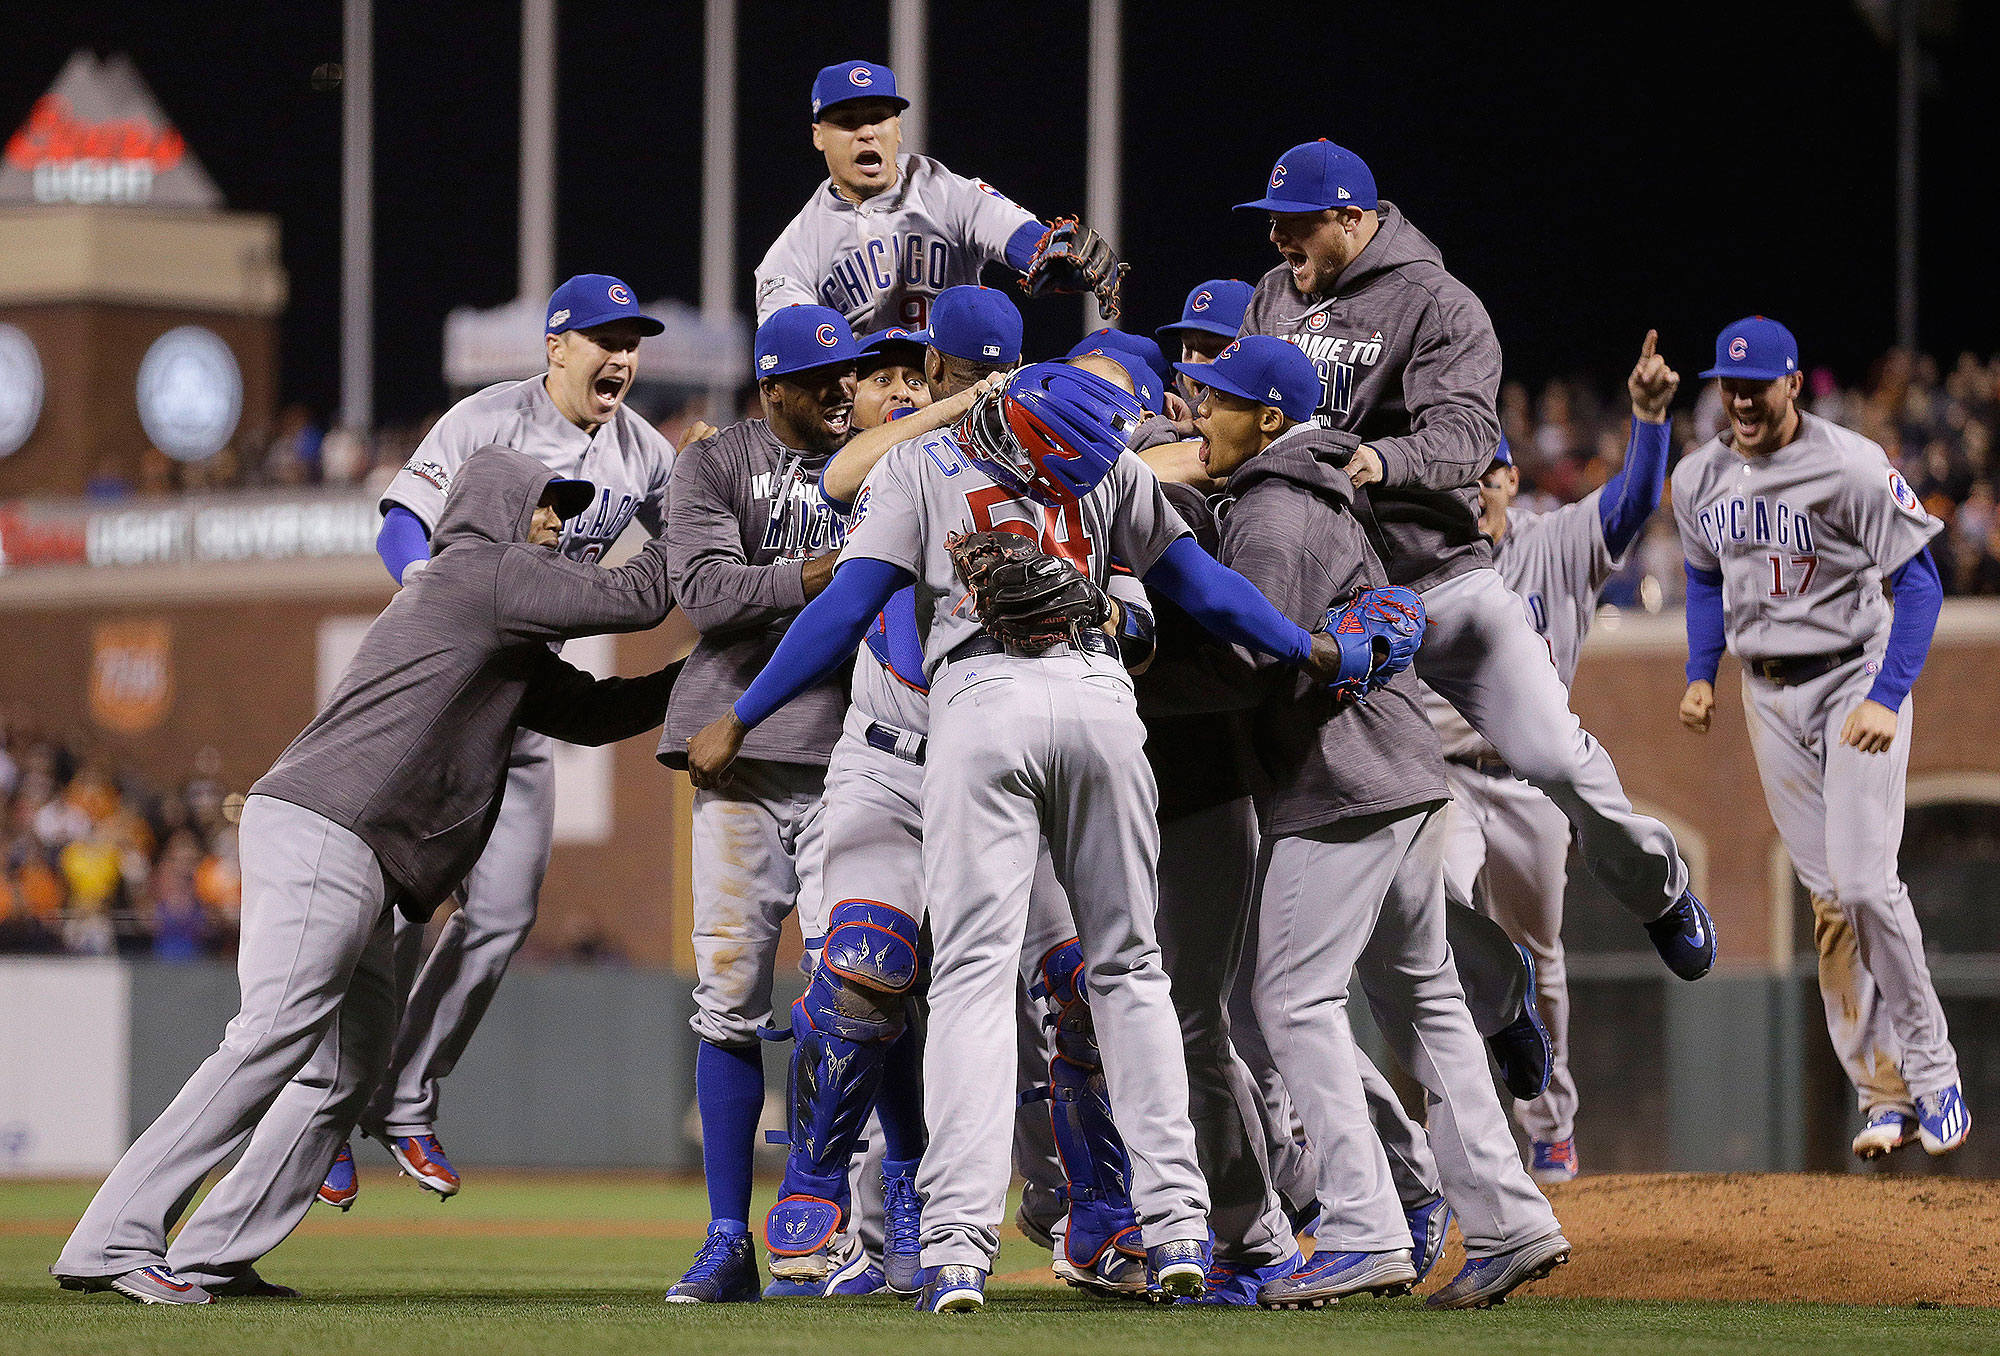 Of all the contingencies Roger Goodell has had to deal with, the Cubs being the favorite to win the World Series had to be the last one he considered. But the National League Championship Series set FS1 records on Sunday night against Football Night in America. But still, the ratings for the Sunday night game between the Colts and Texans did a 9.0/15 overnight rating, while Game 2 of the Dodgers/Cubs NLCS did a 5.0/8, so baseball still has a good amount of catching up to do. Alex Rodriguez told The Sporting News that MLB is loaded with young stars and has a window of opportunity to take over football. That's a nice sentiment if you love baseball, but this is a Cubs story—if the Dodgers advance to the World Series, they won't provide any extra competition on the ratings front.